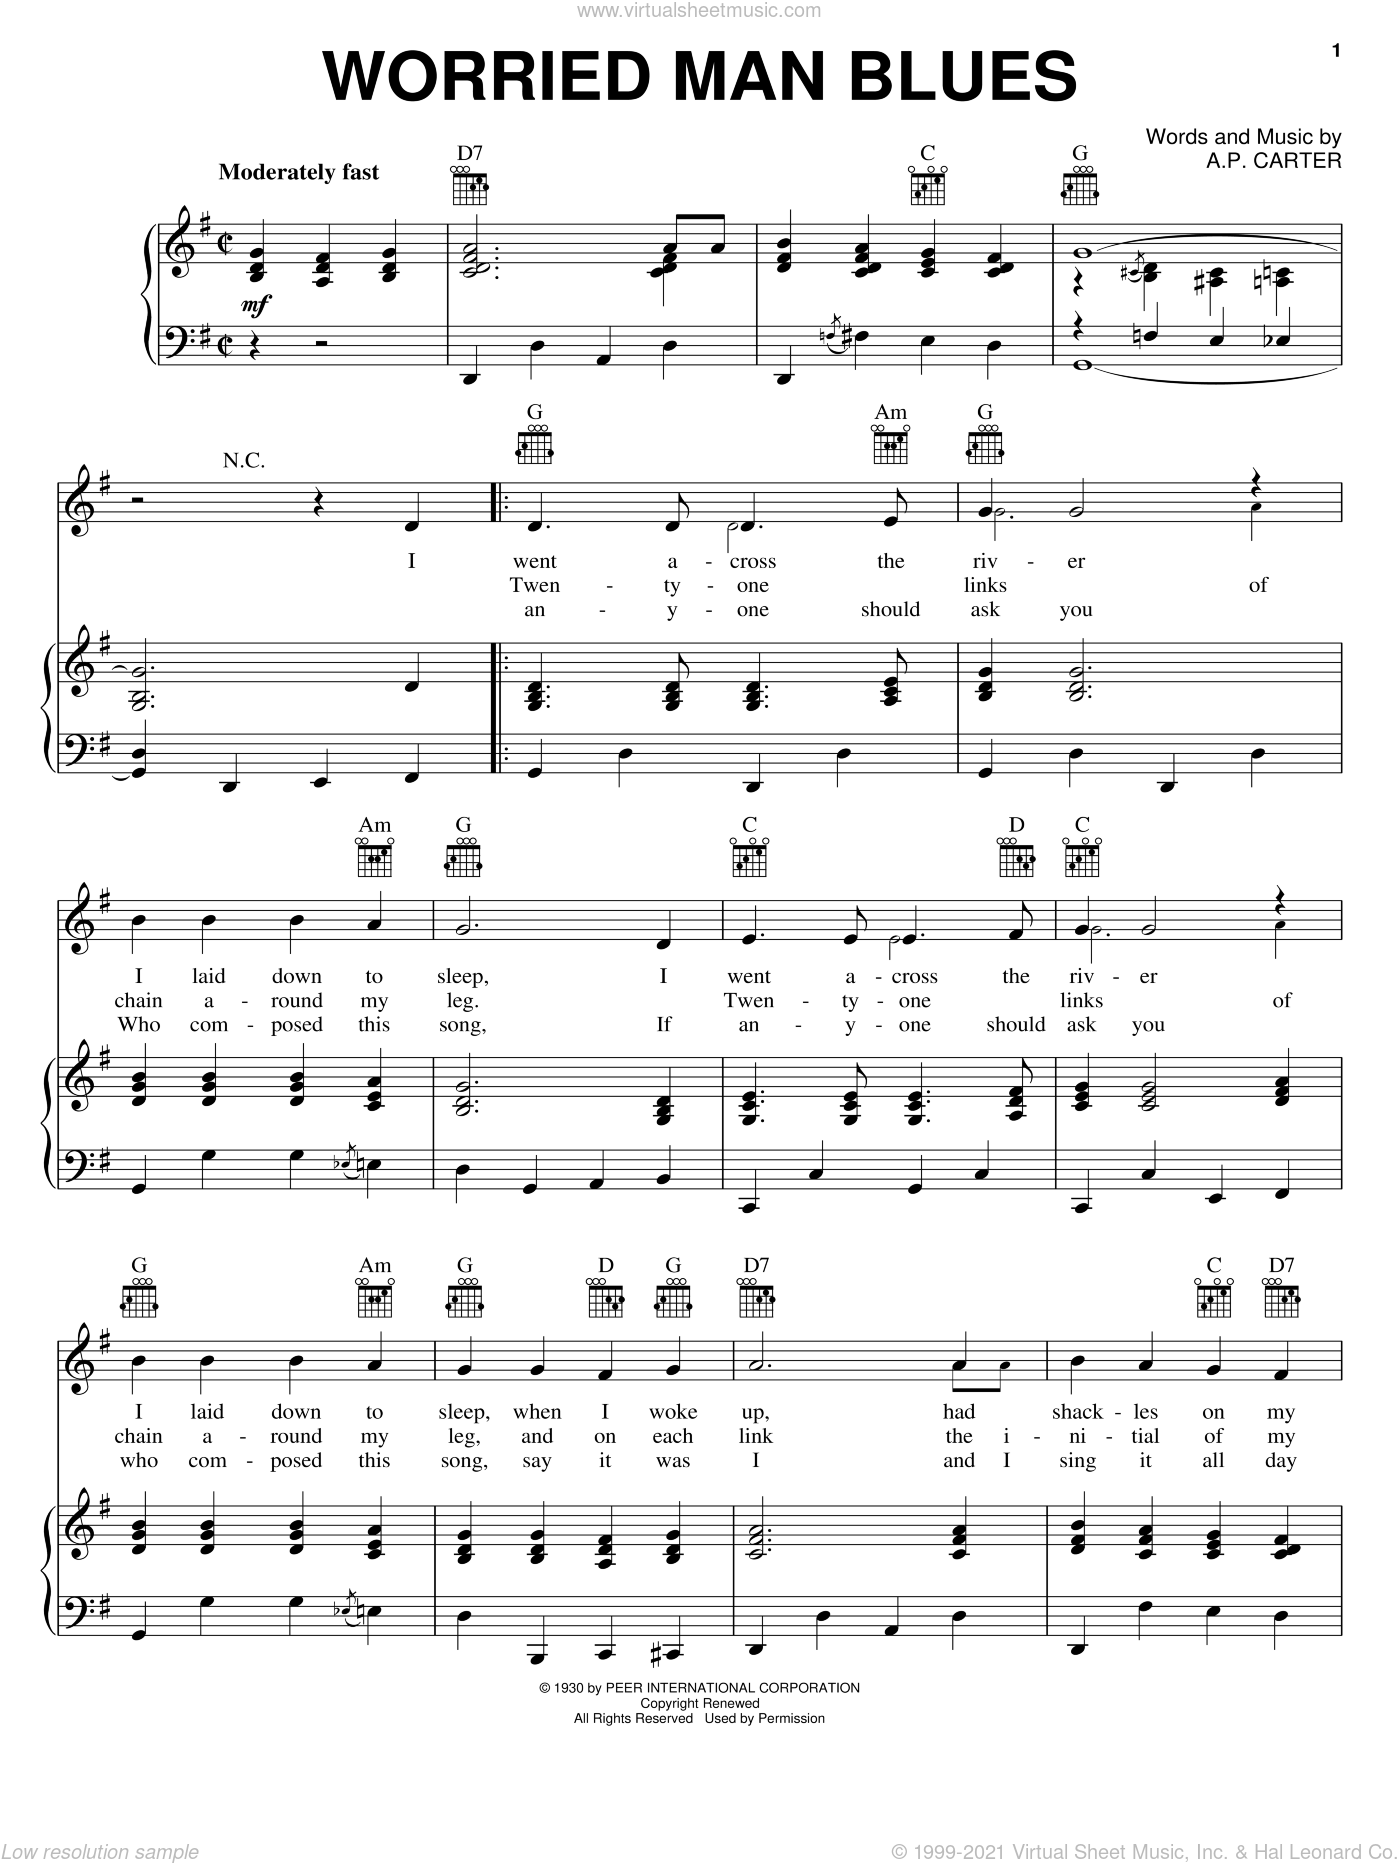 Worried Man Blues sheet music for voice, piano or guitar by The Carter Family, A.P. Carter, Maybelle Carter and Sara Carter, intermediate skill level